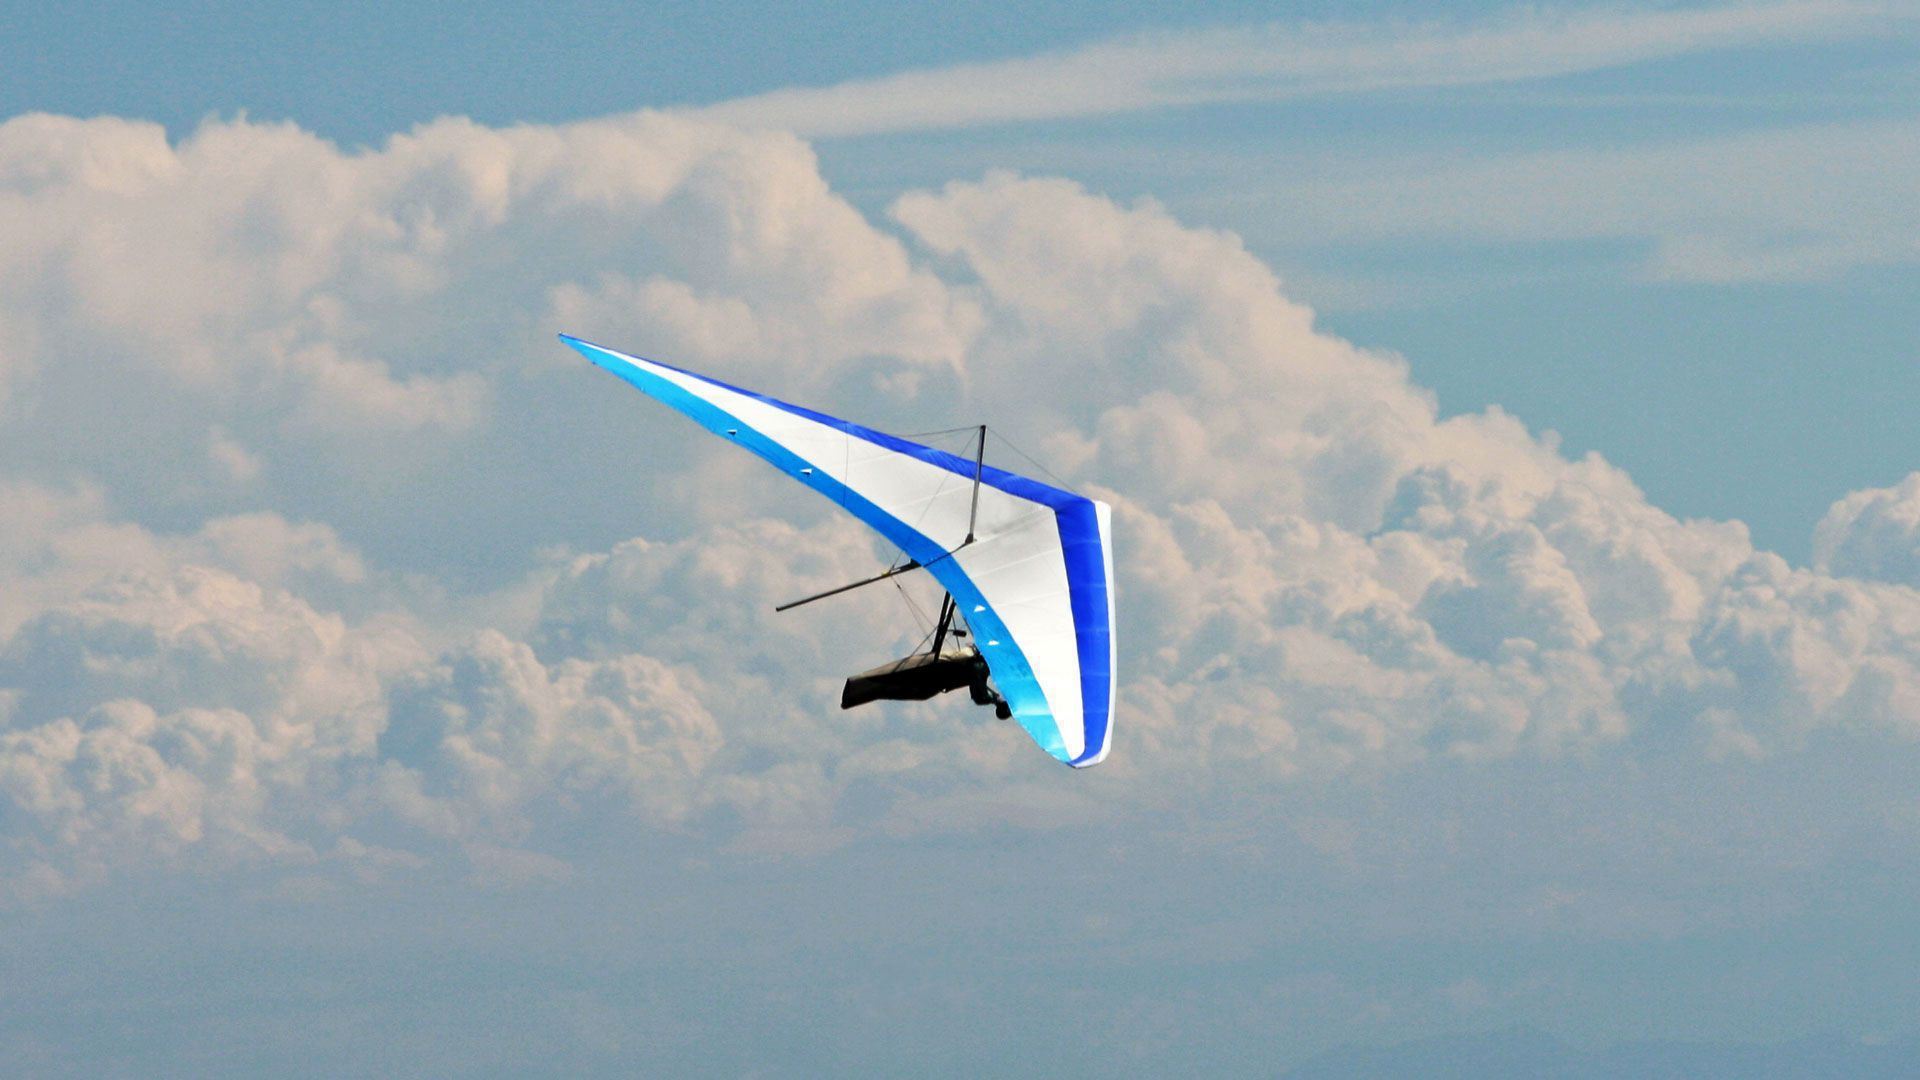 1920x1080 - Hang Gliding Wallpapers 28